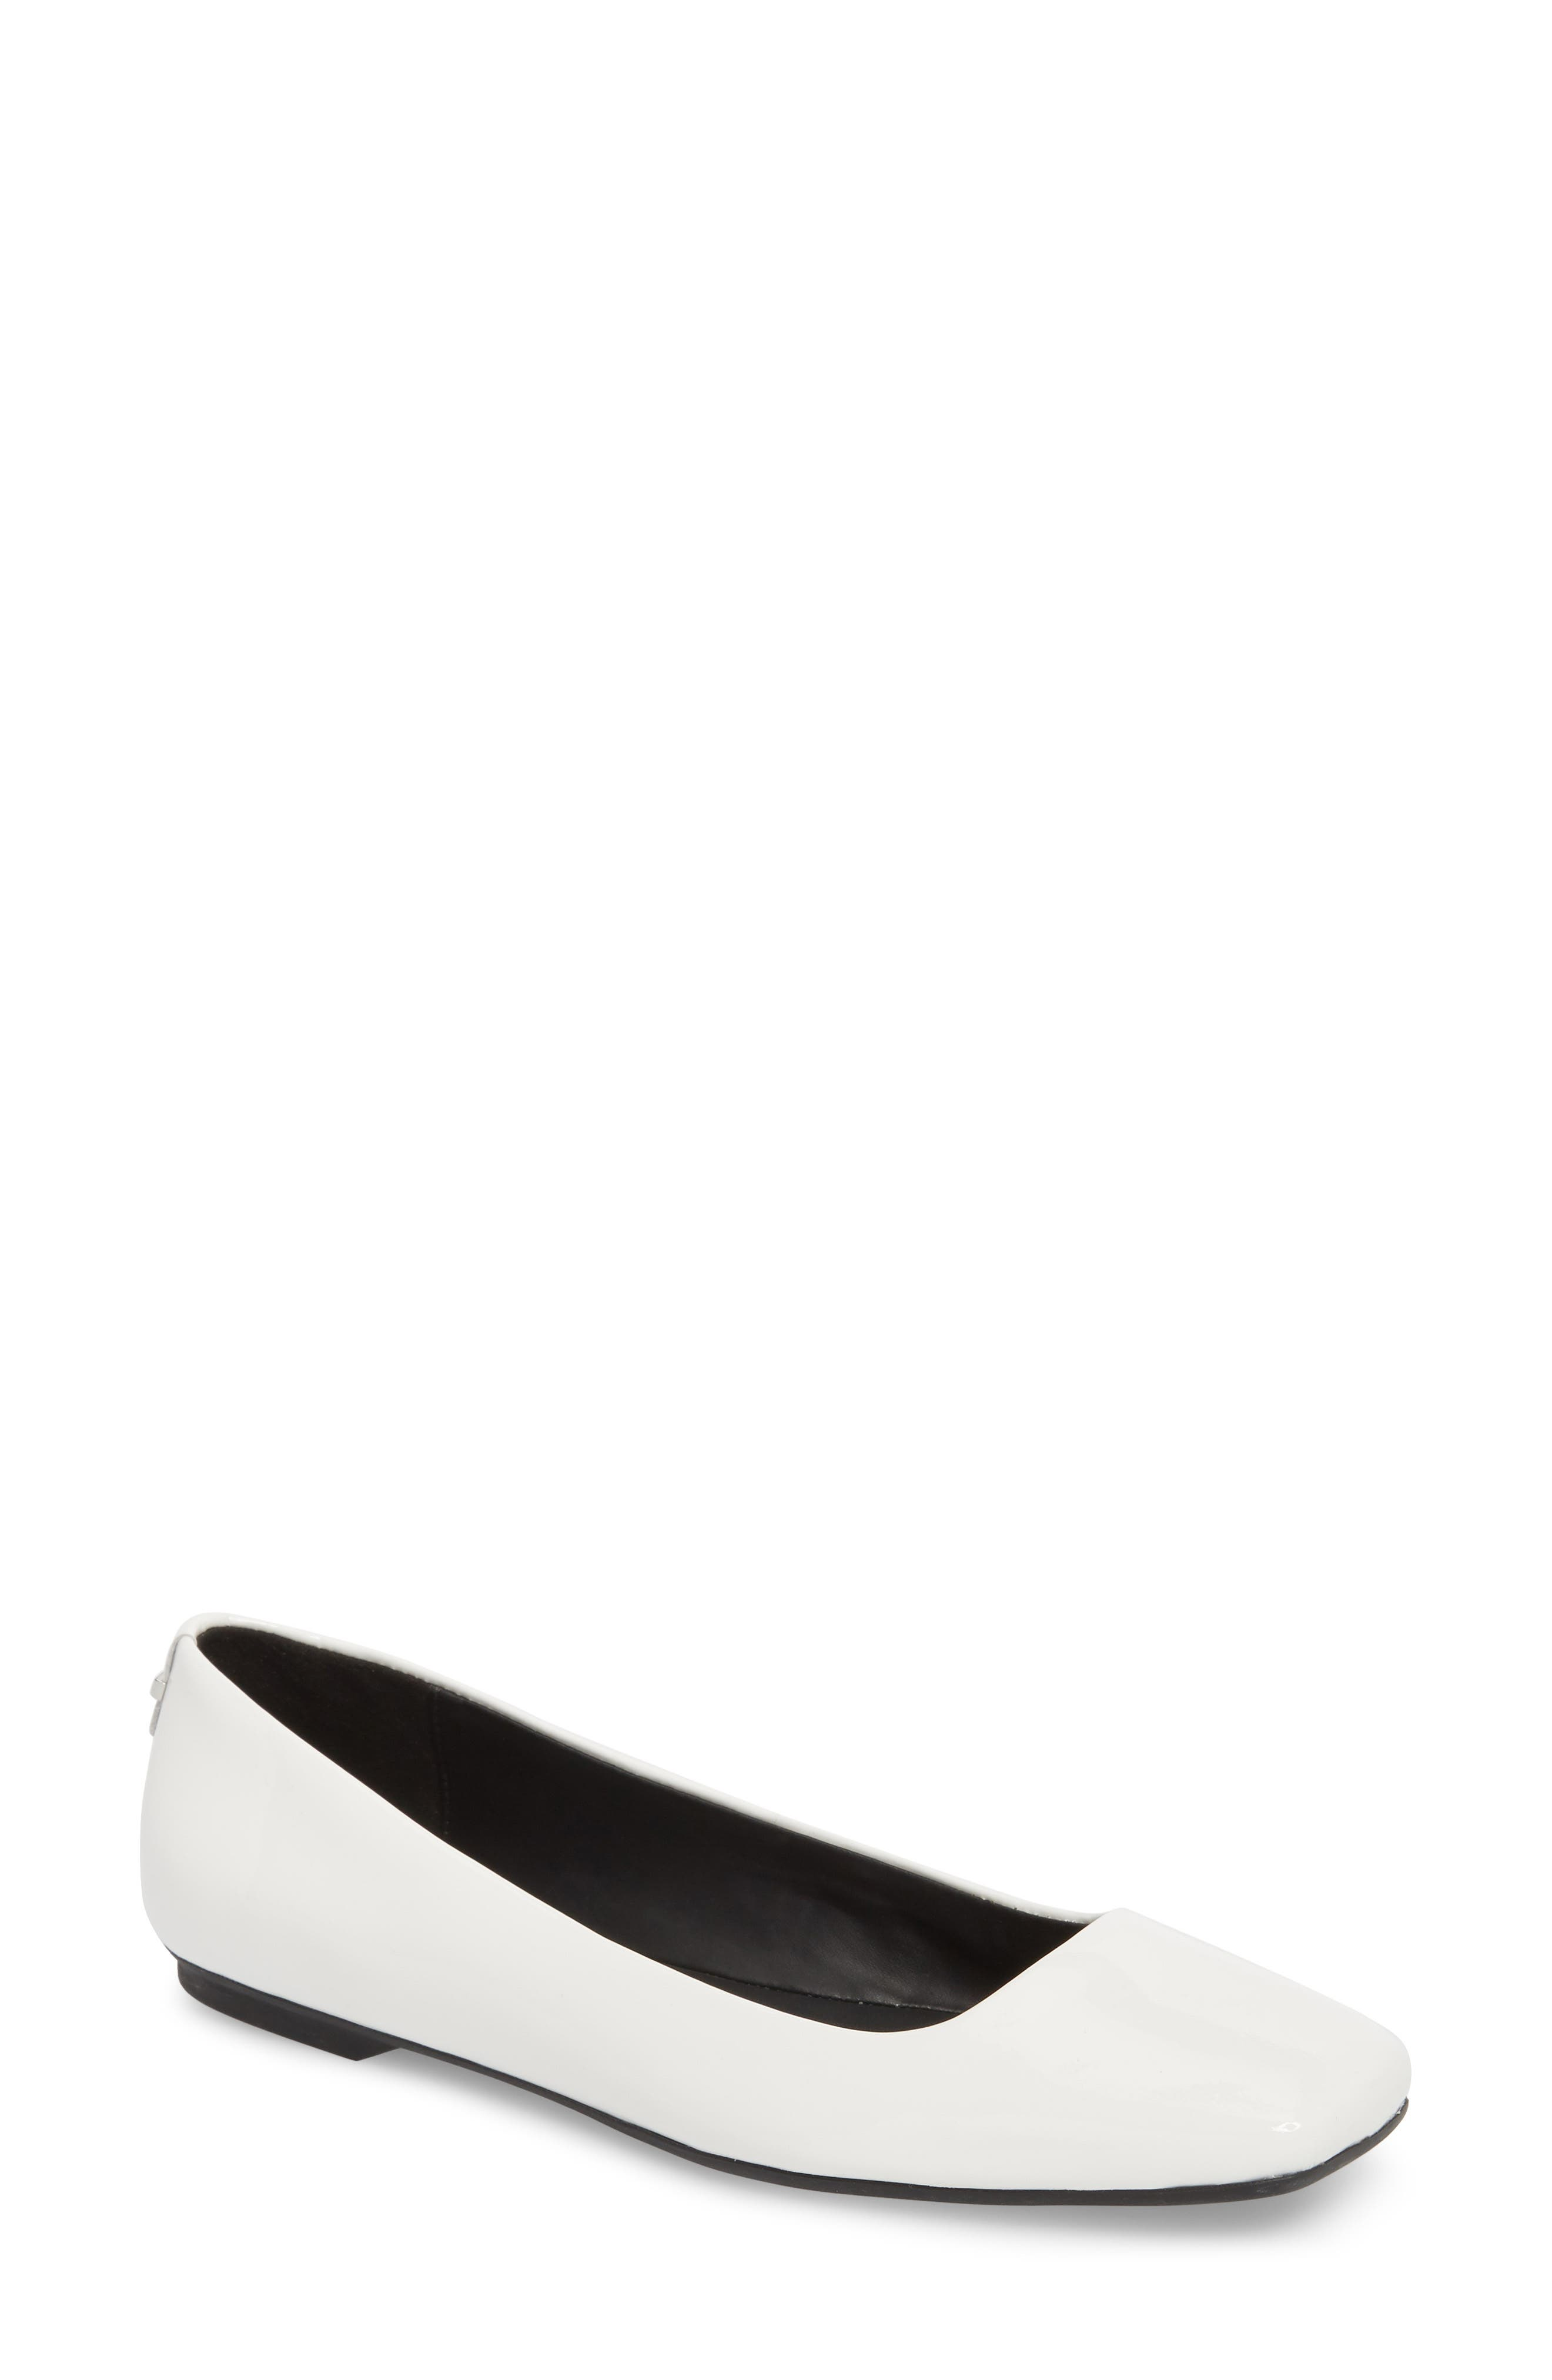 Alternate Image 1 Selected - Calvin Klein Enith Flat (Women)